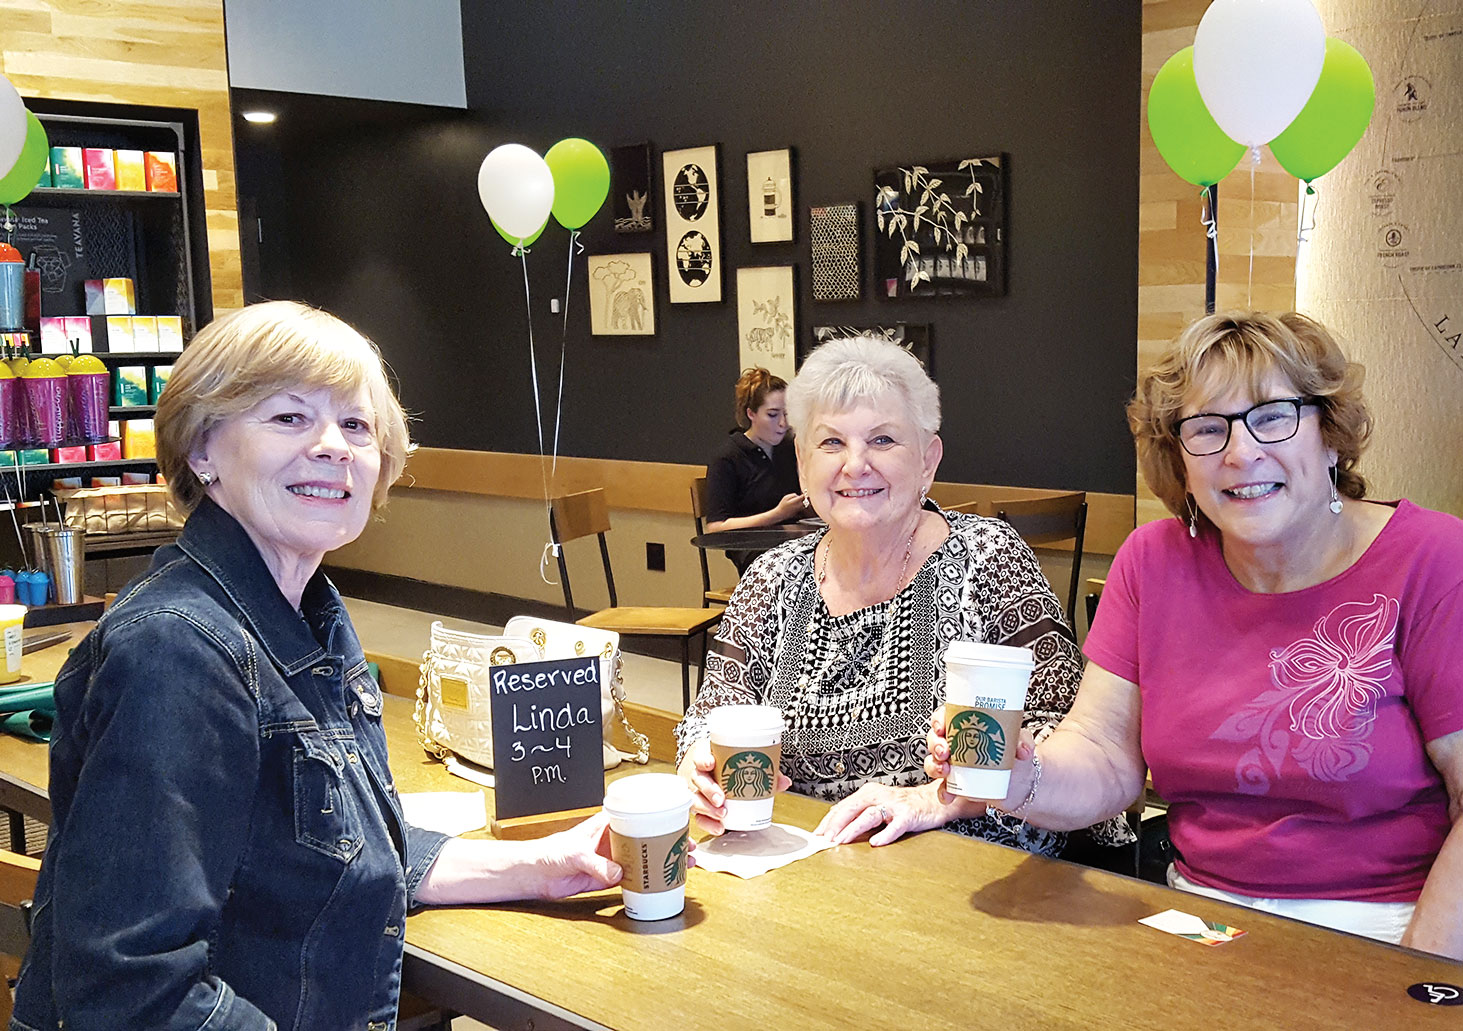 Starbucks - Rosemary Weinstein, Jan Utzman and Linda Terry join in the ribbon cutting ceremony for the Argyle Chamber of Commerce.